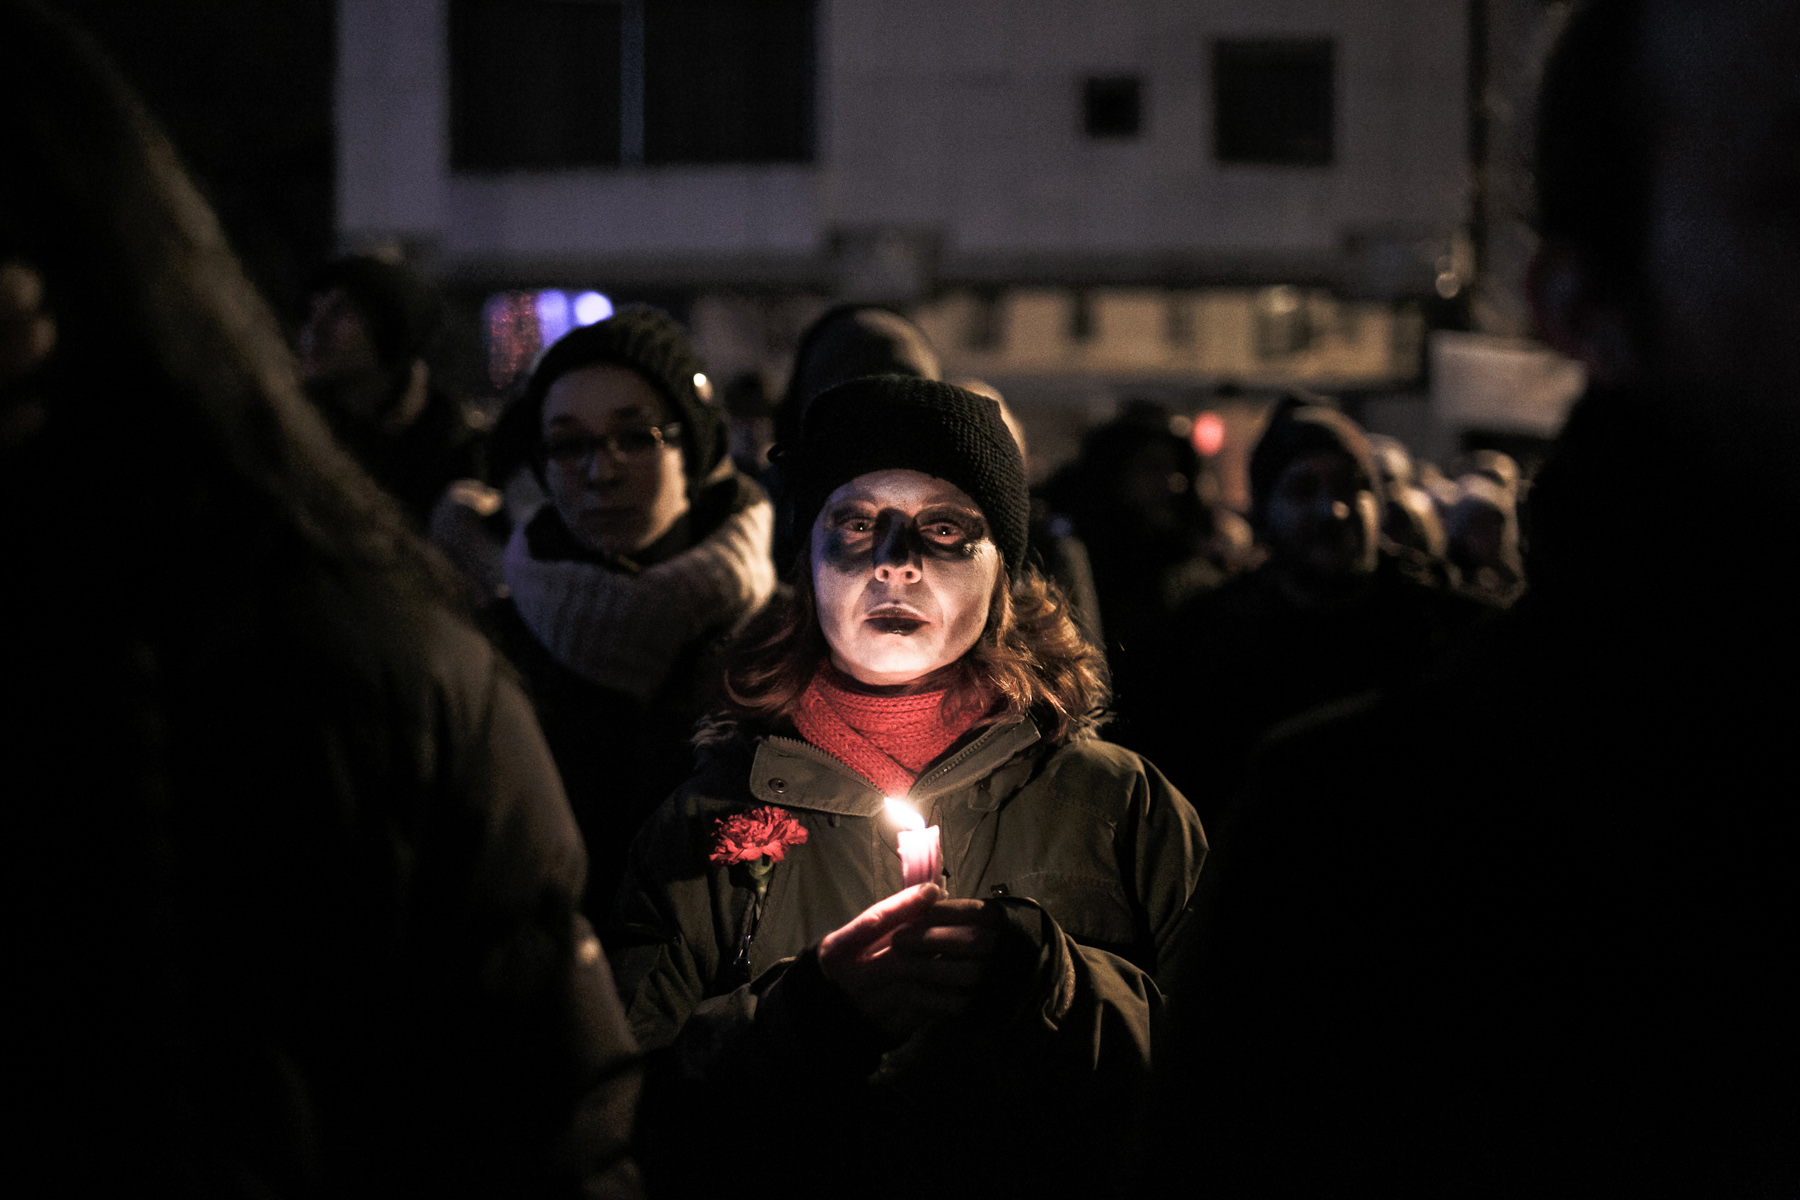 A protester in zombie makeup carries a carnation and a candle as signs of peaceful protest  during a protest staged by cultural workers on December 22, 2012, in Ljubljana, Slovenia.